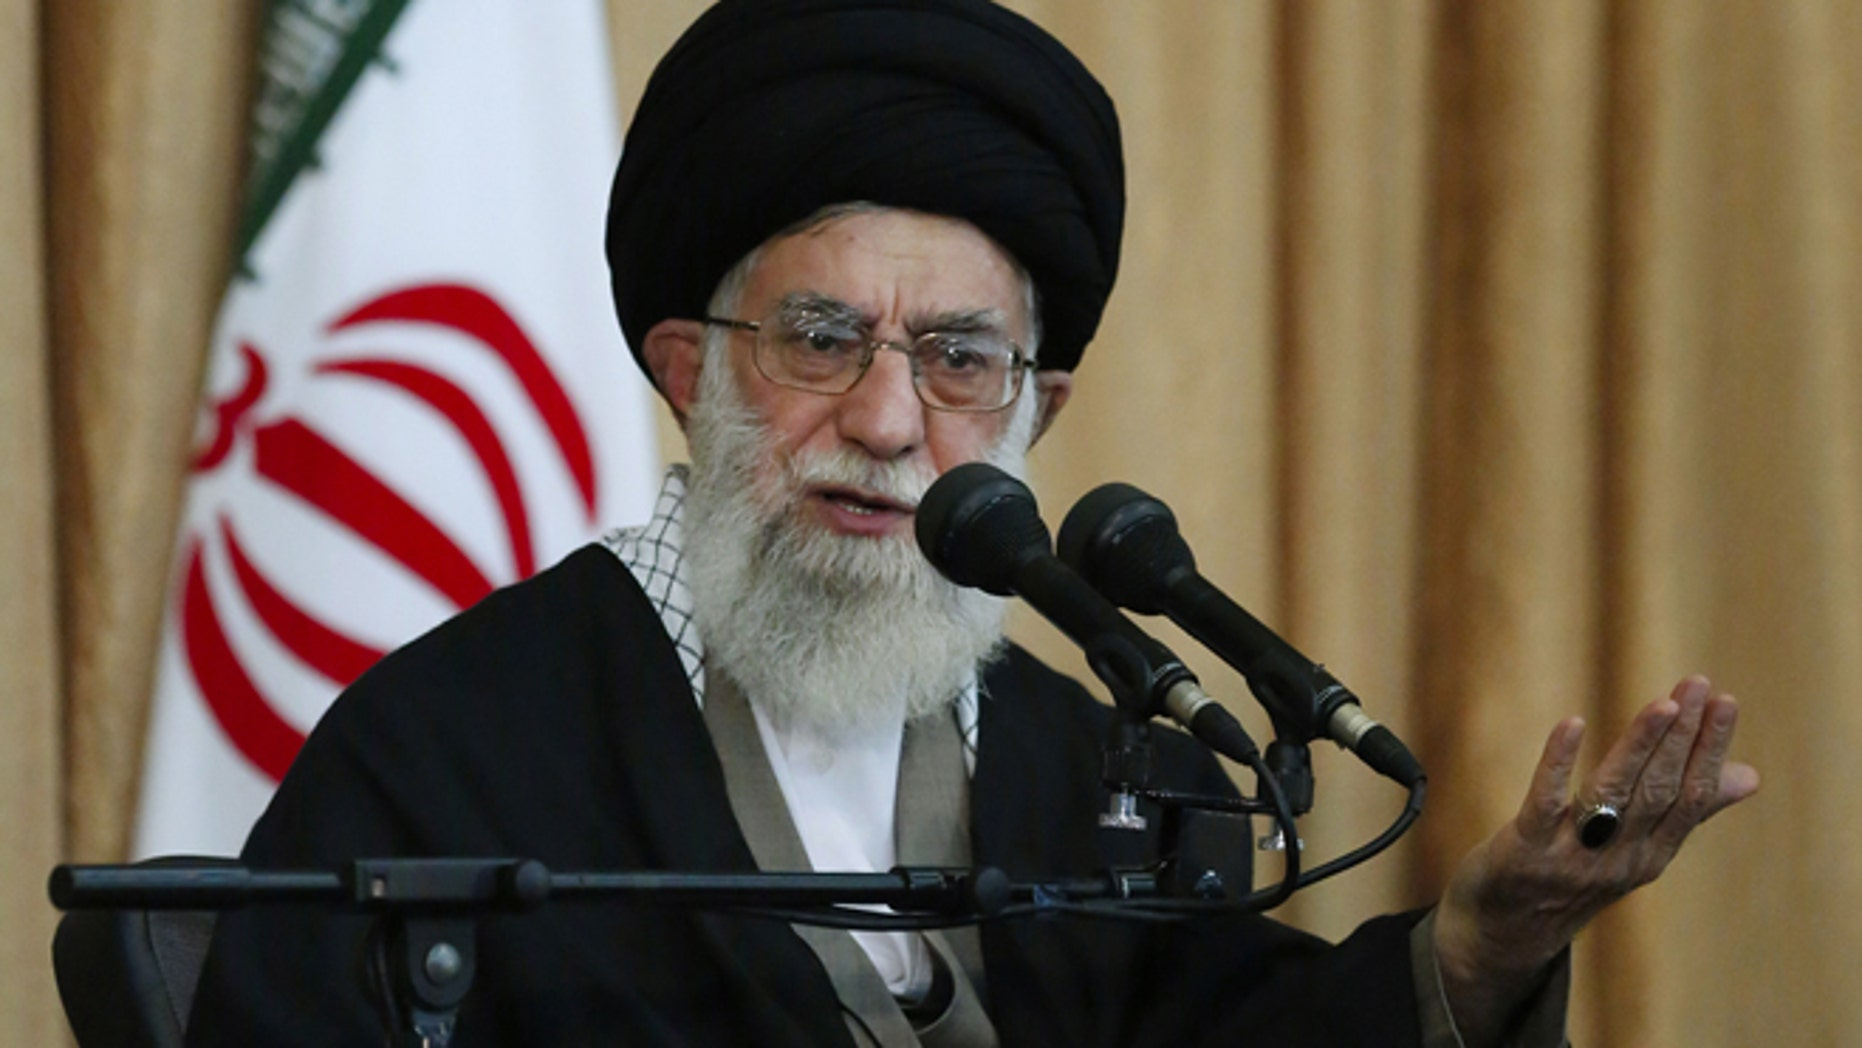 There's a dispute about whether Supreme Leader Ayatollah Ali Khamenei ever gave a fatwa, or religious edict, forbidding the pursuit of nuclear weapons.